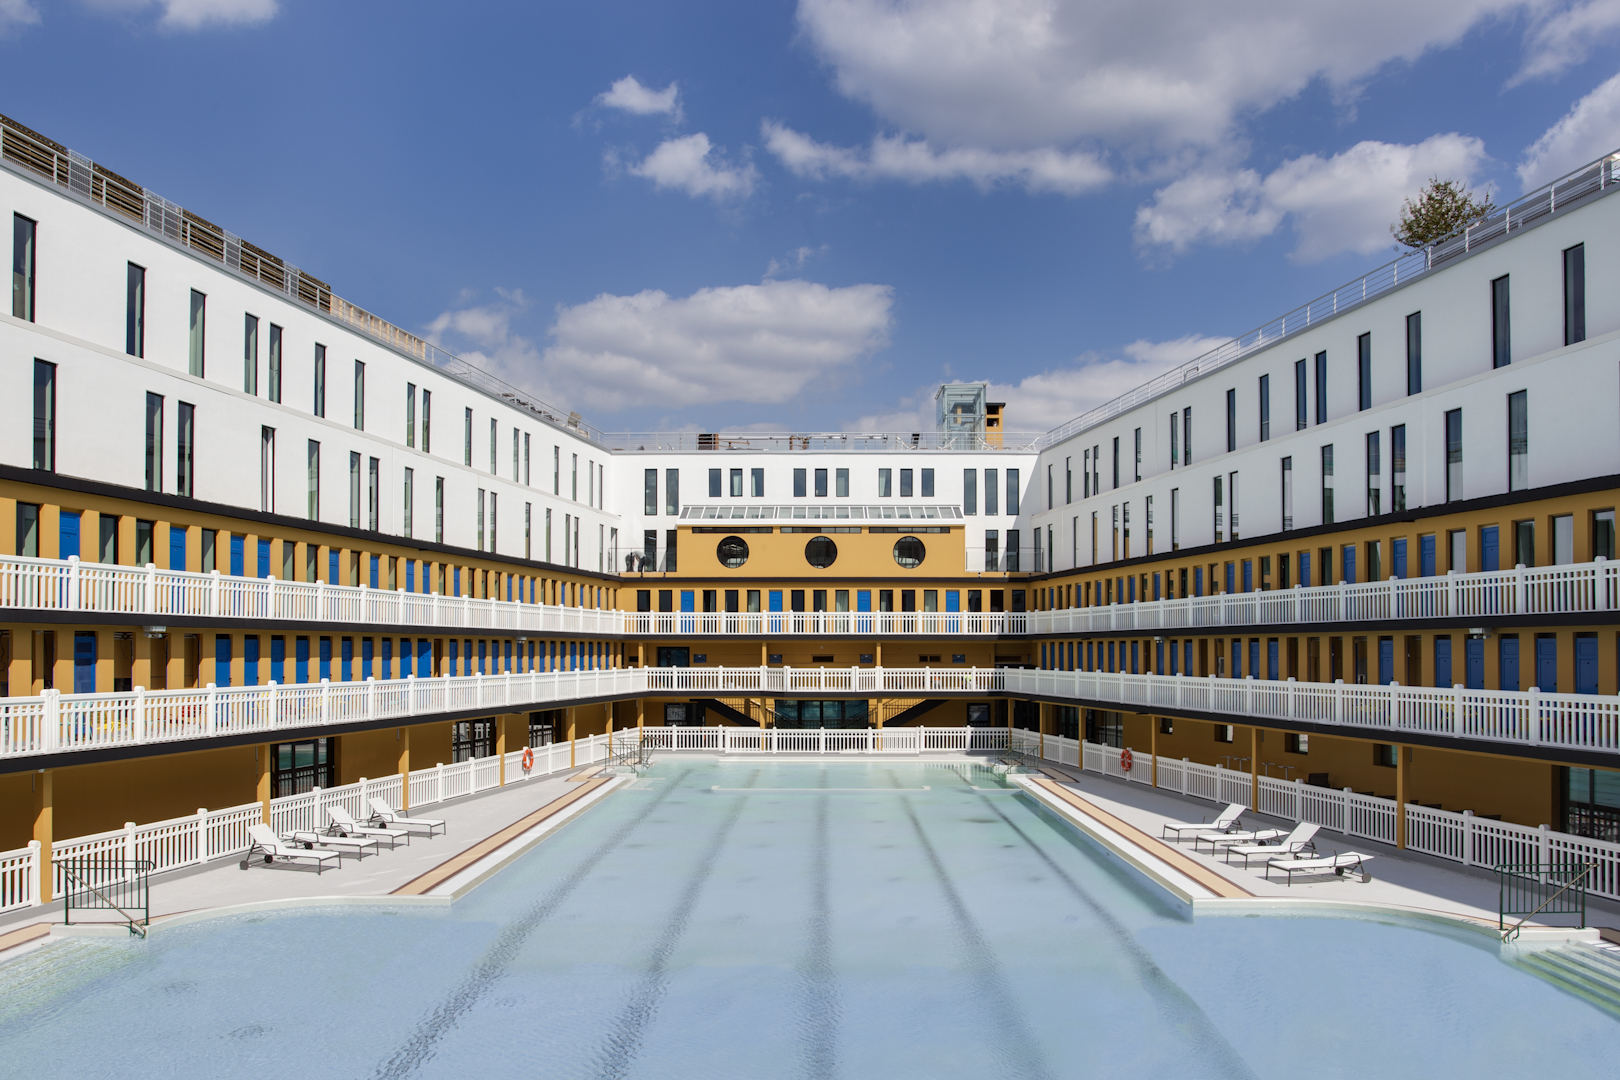 Piscine Pontoise Fitness Paris Le Top 5 Des Piscines Cnews Fr